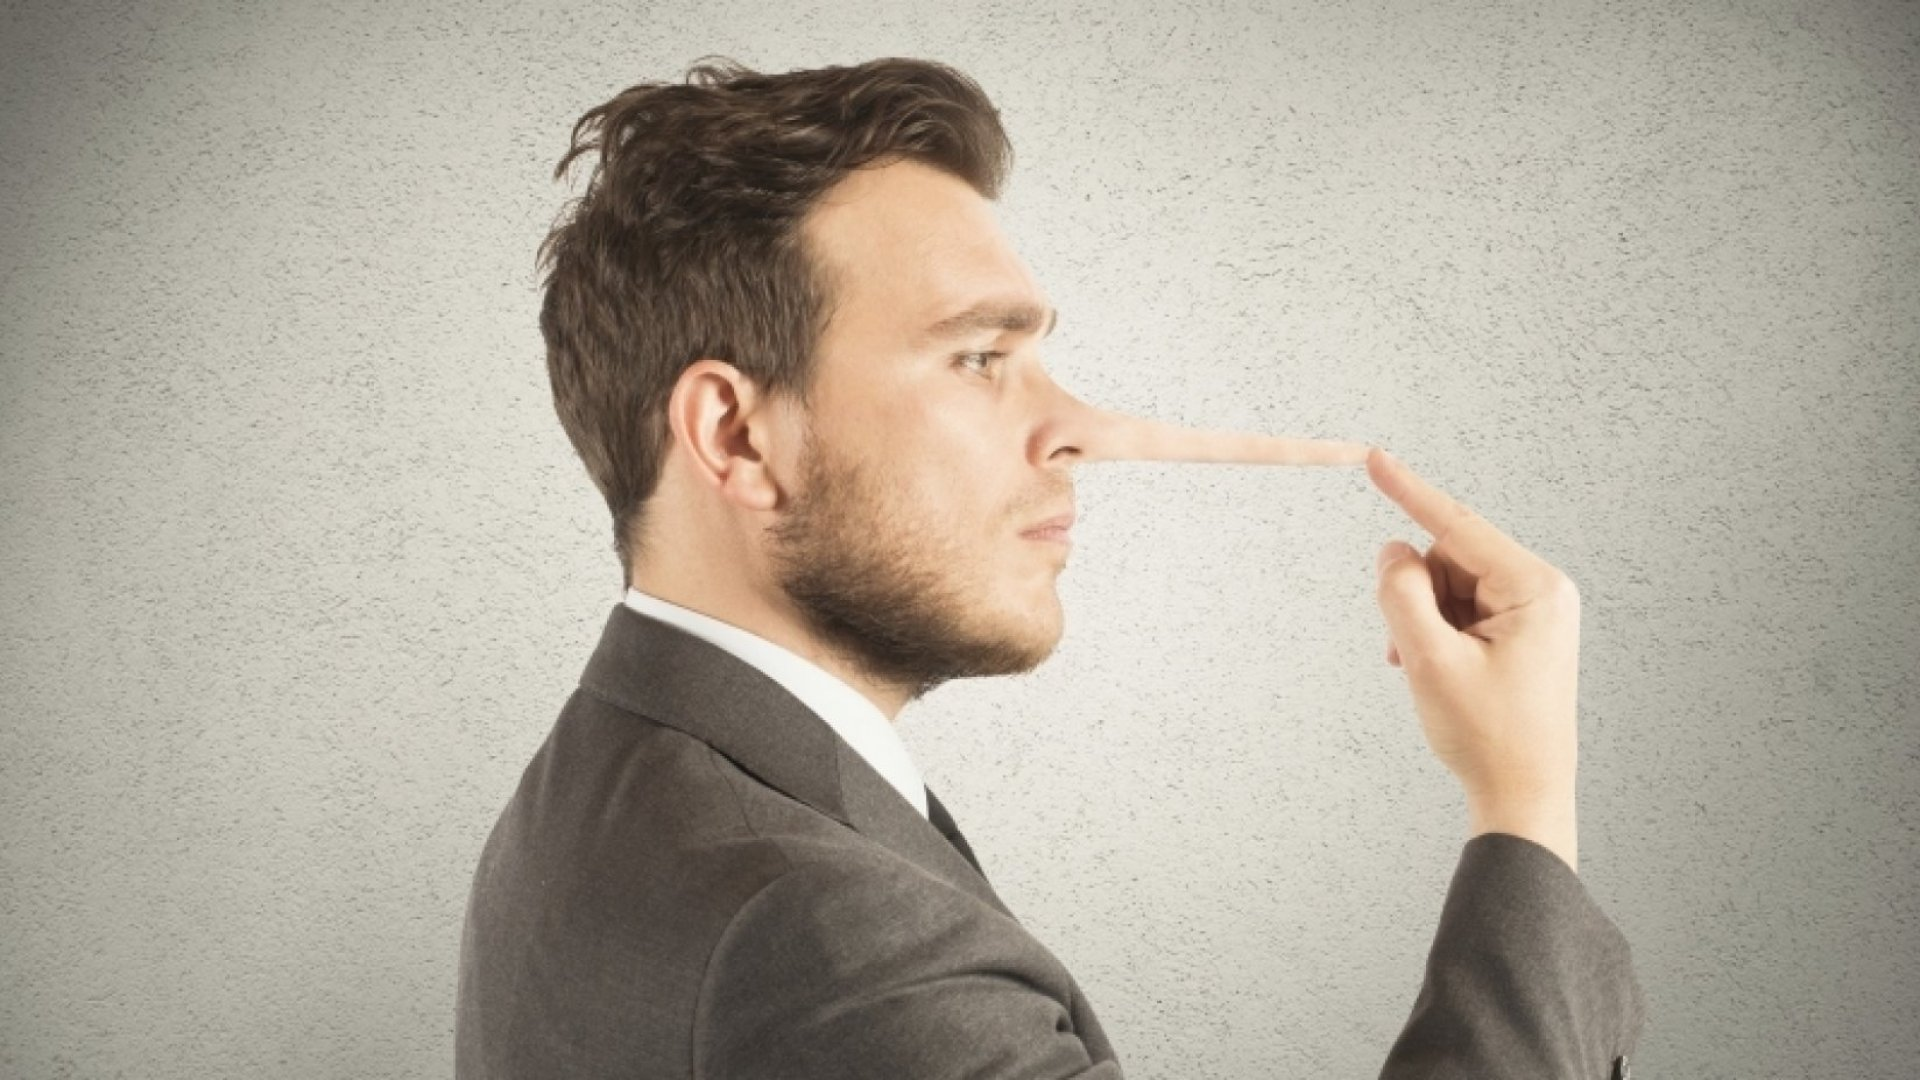 What to Do If You Catch a Job Candidate Lying in an Interview